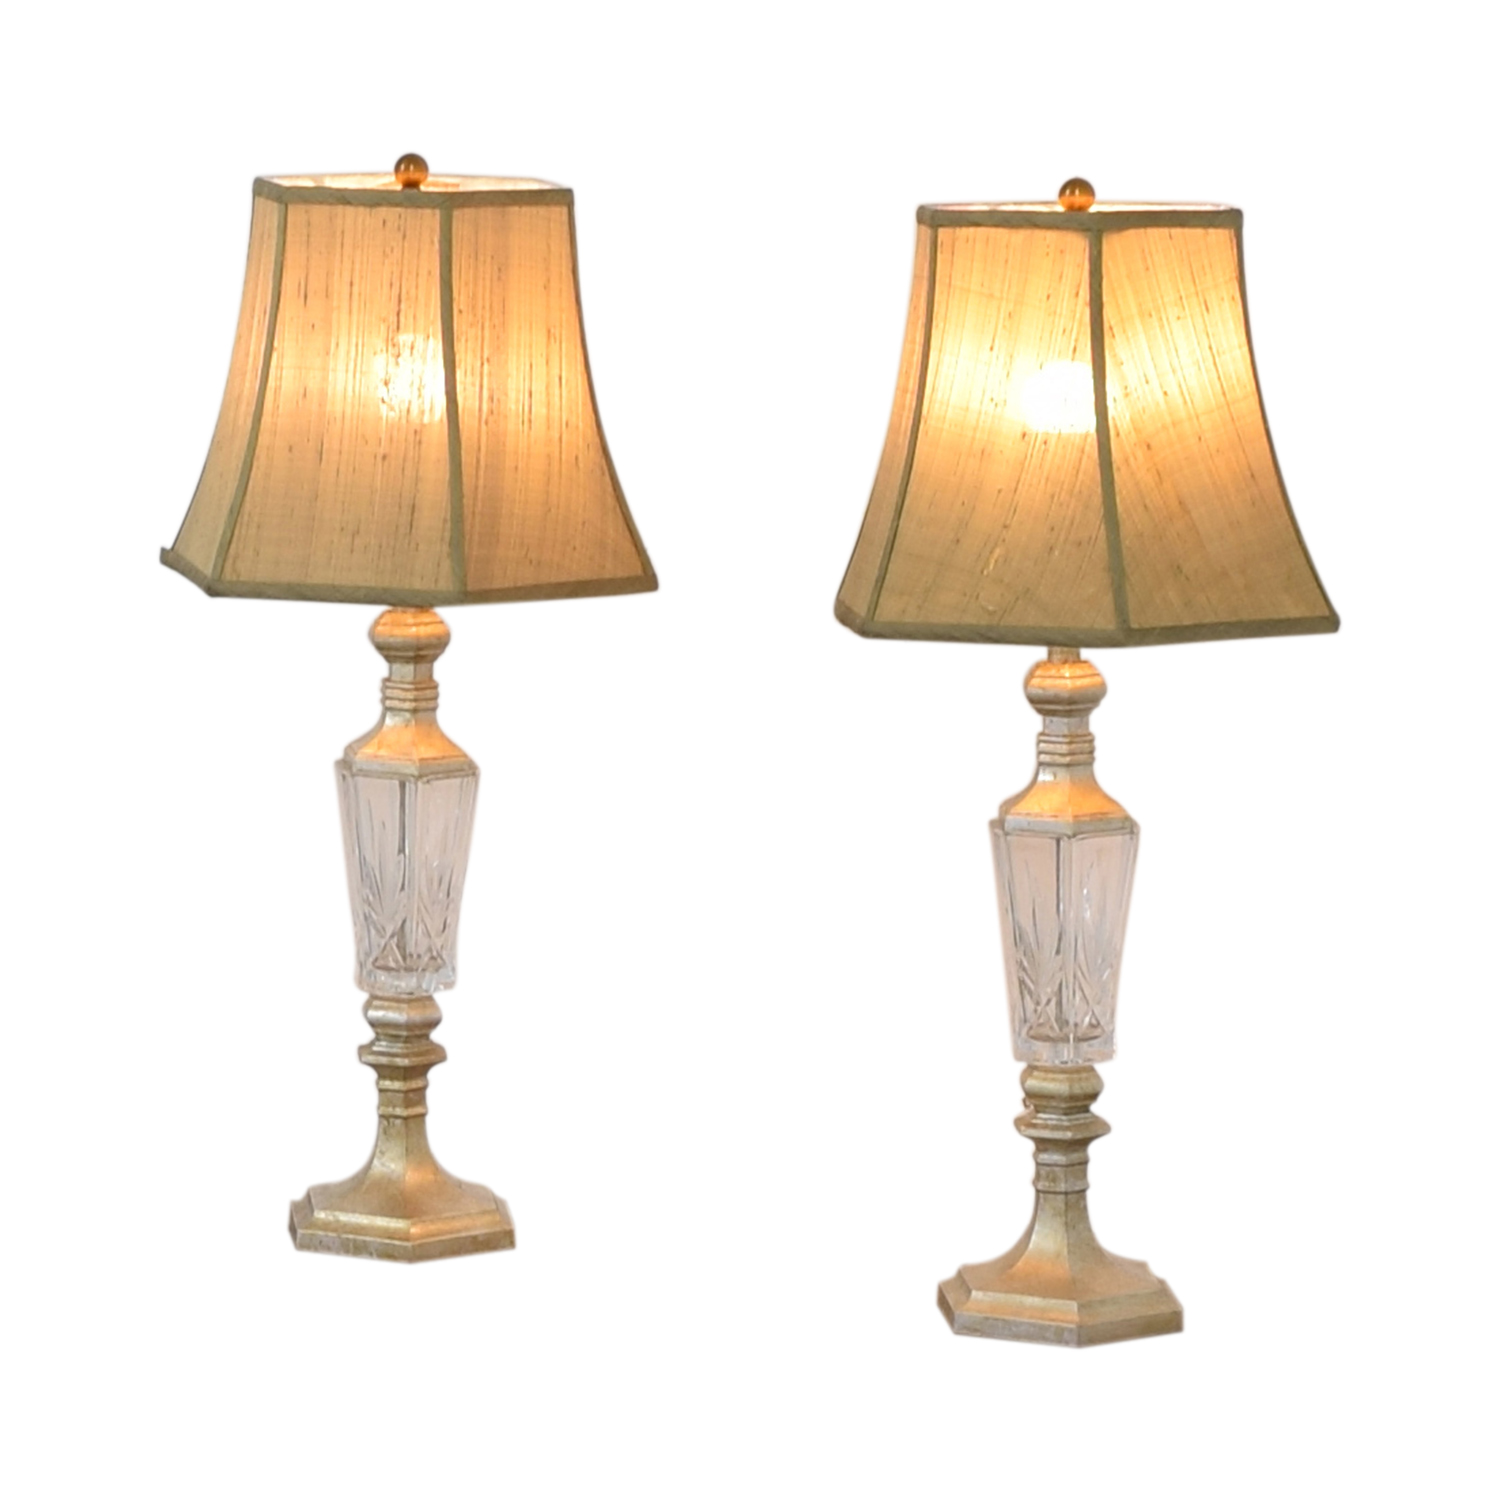 Distressed and Glass Accent Table Lamps sale